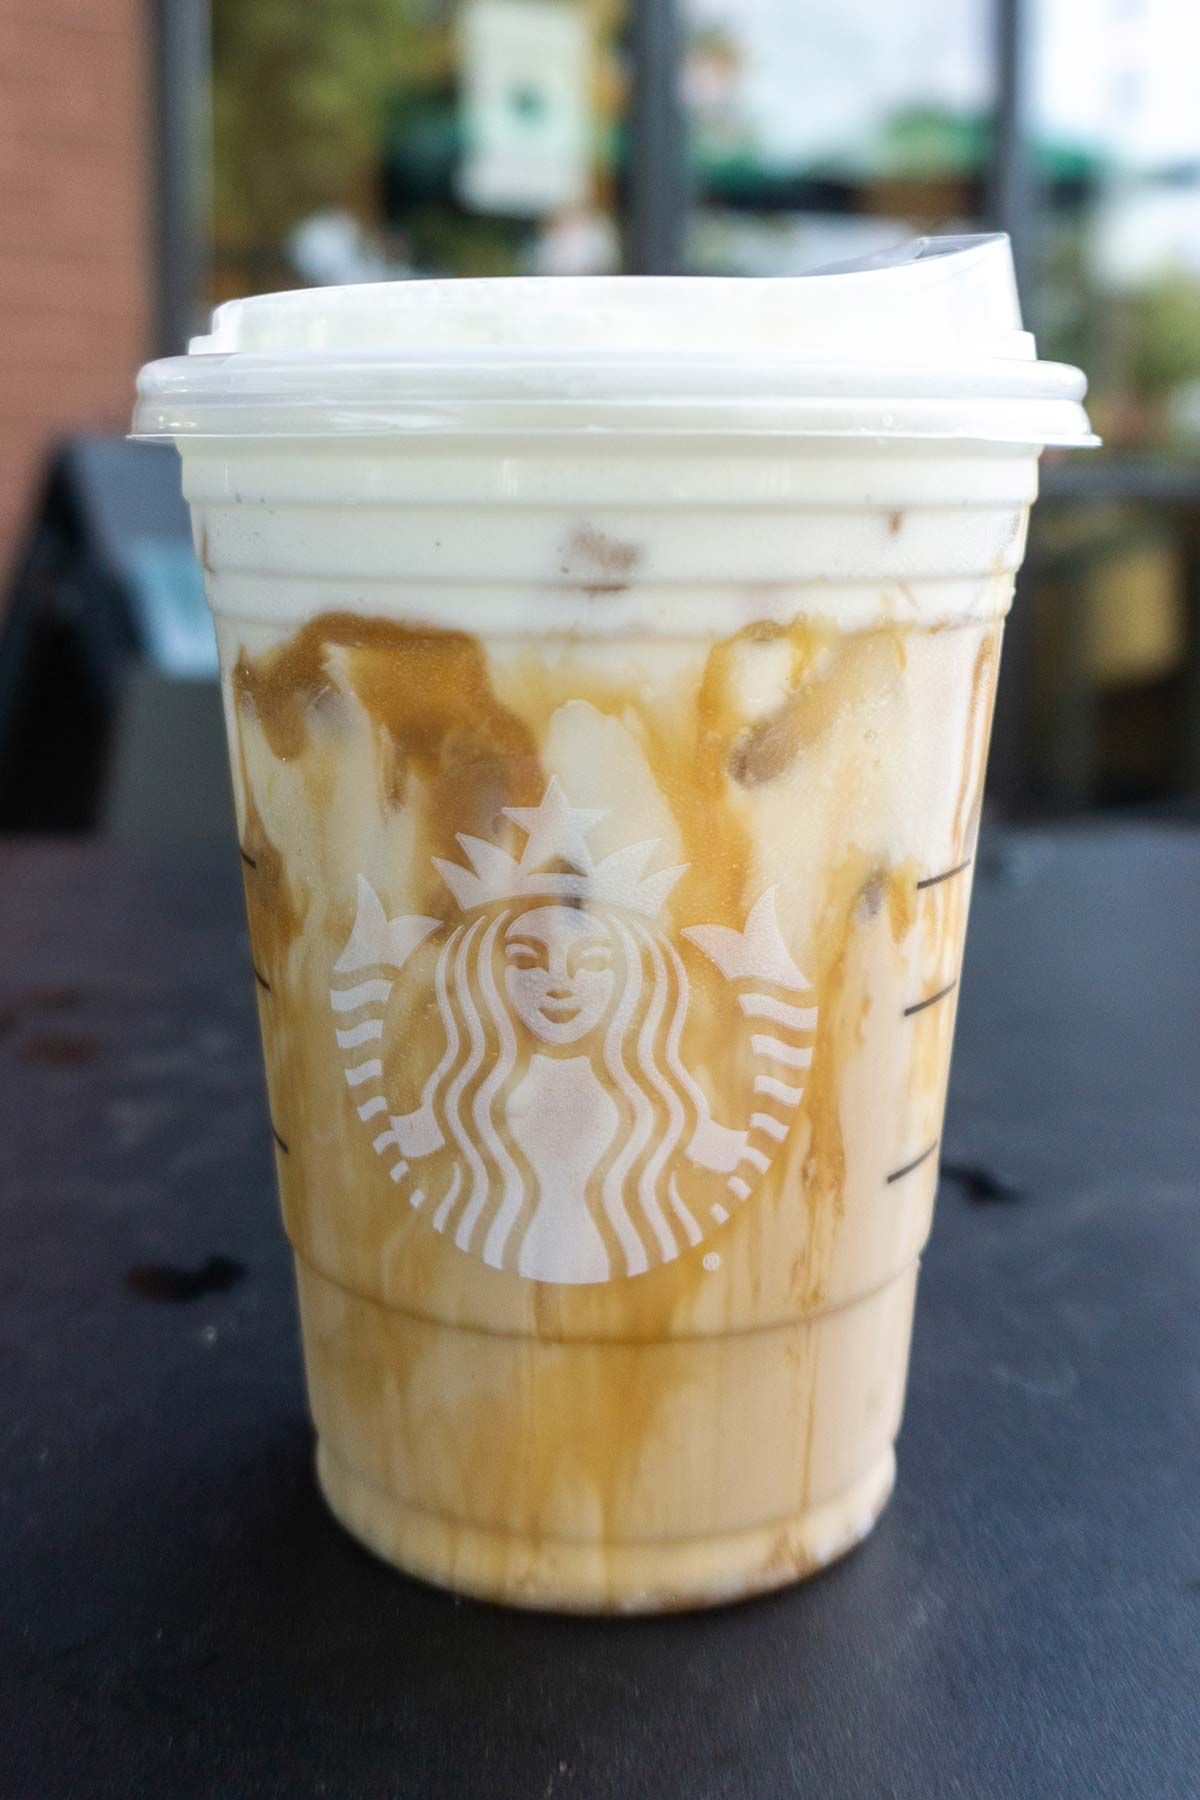 Iced White Mocha with Sweet Cream Foam with extra caramel drizzle Starbucks drink in a cup.